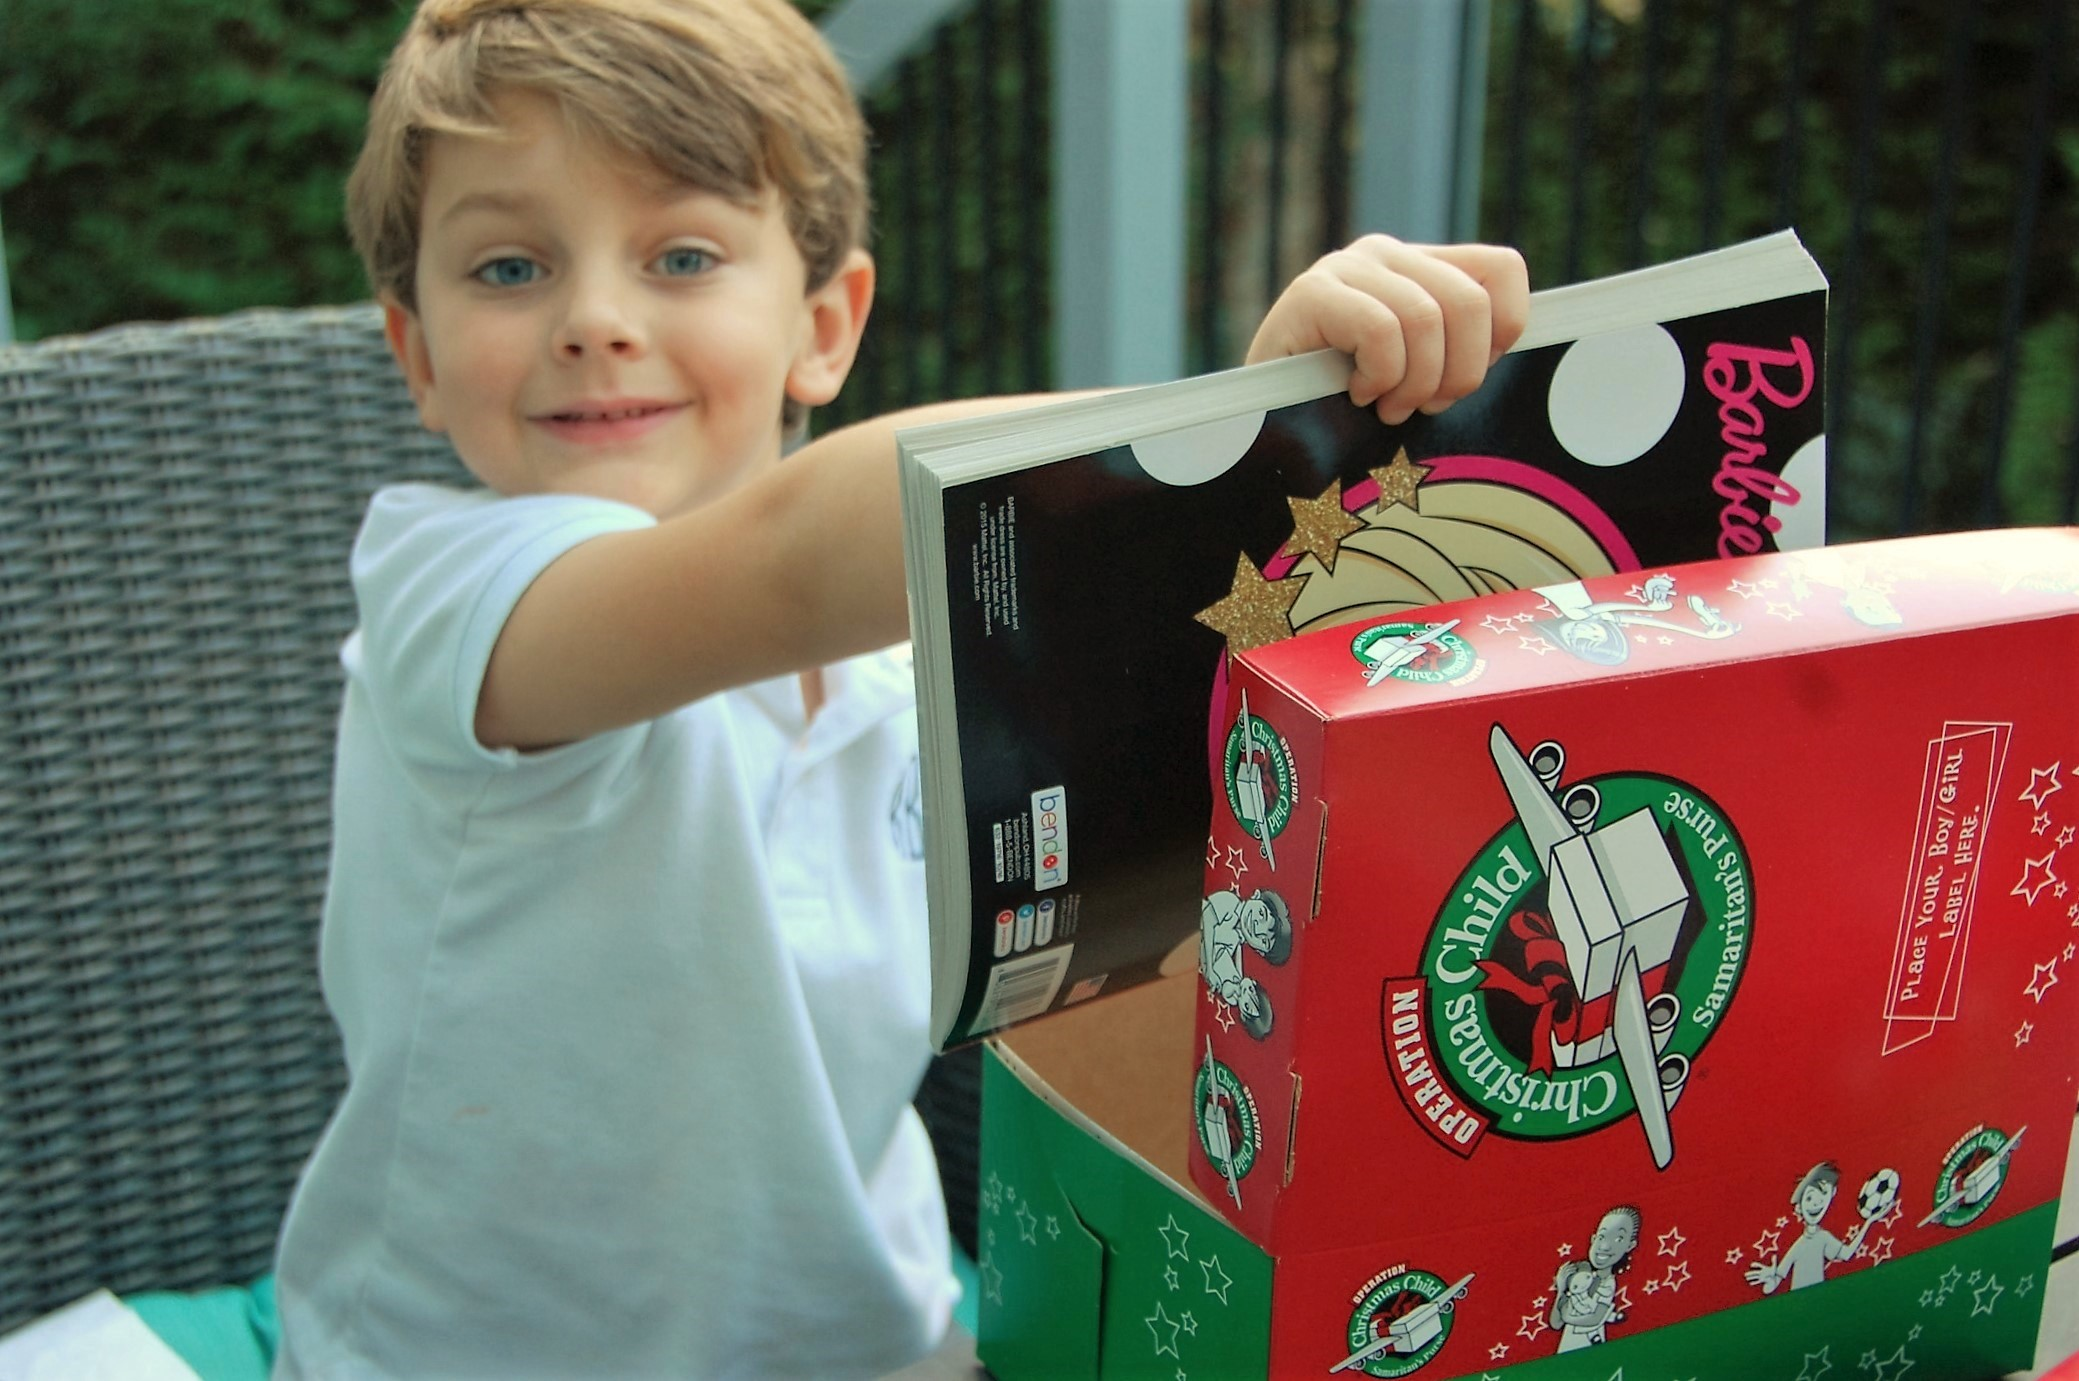 Knox Bishop supports Operation Christmas Child and puts a Barbie magazine along with many other toys and toiletries into his Samaritan's Purse Box by Crockpot Empire